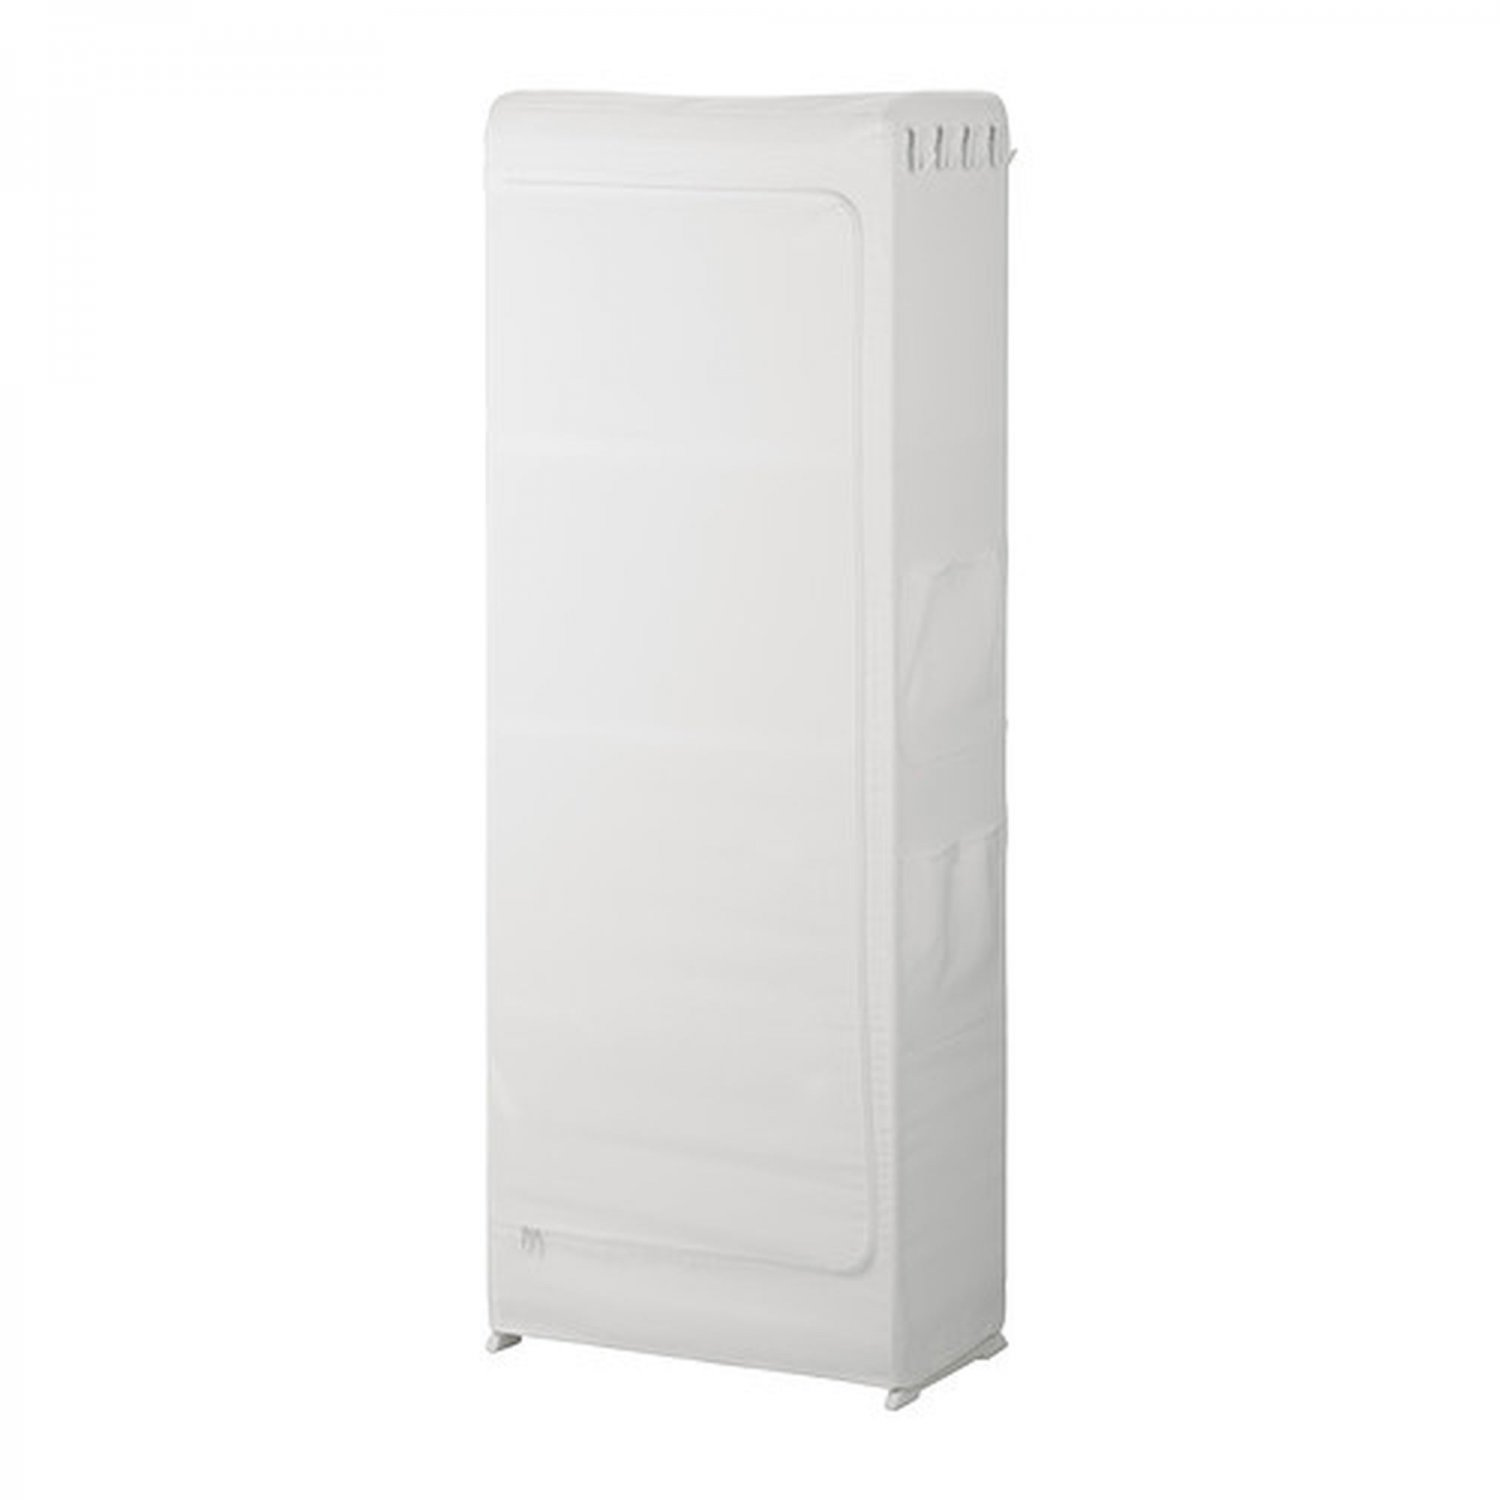 ikea mulig zippered cover white for mulig high shelving unit. Black Bedroom Furniture Sets. Home Design Ideas